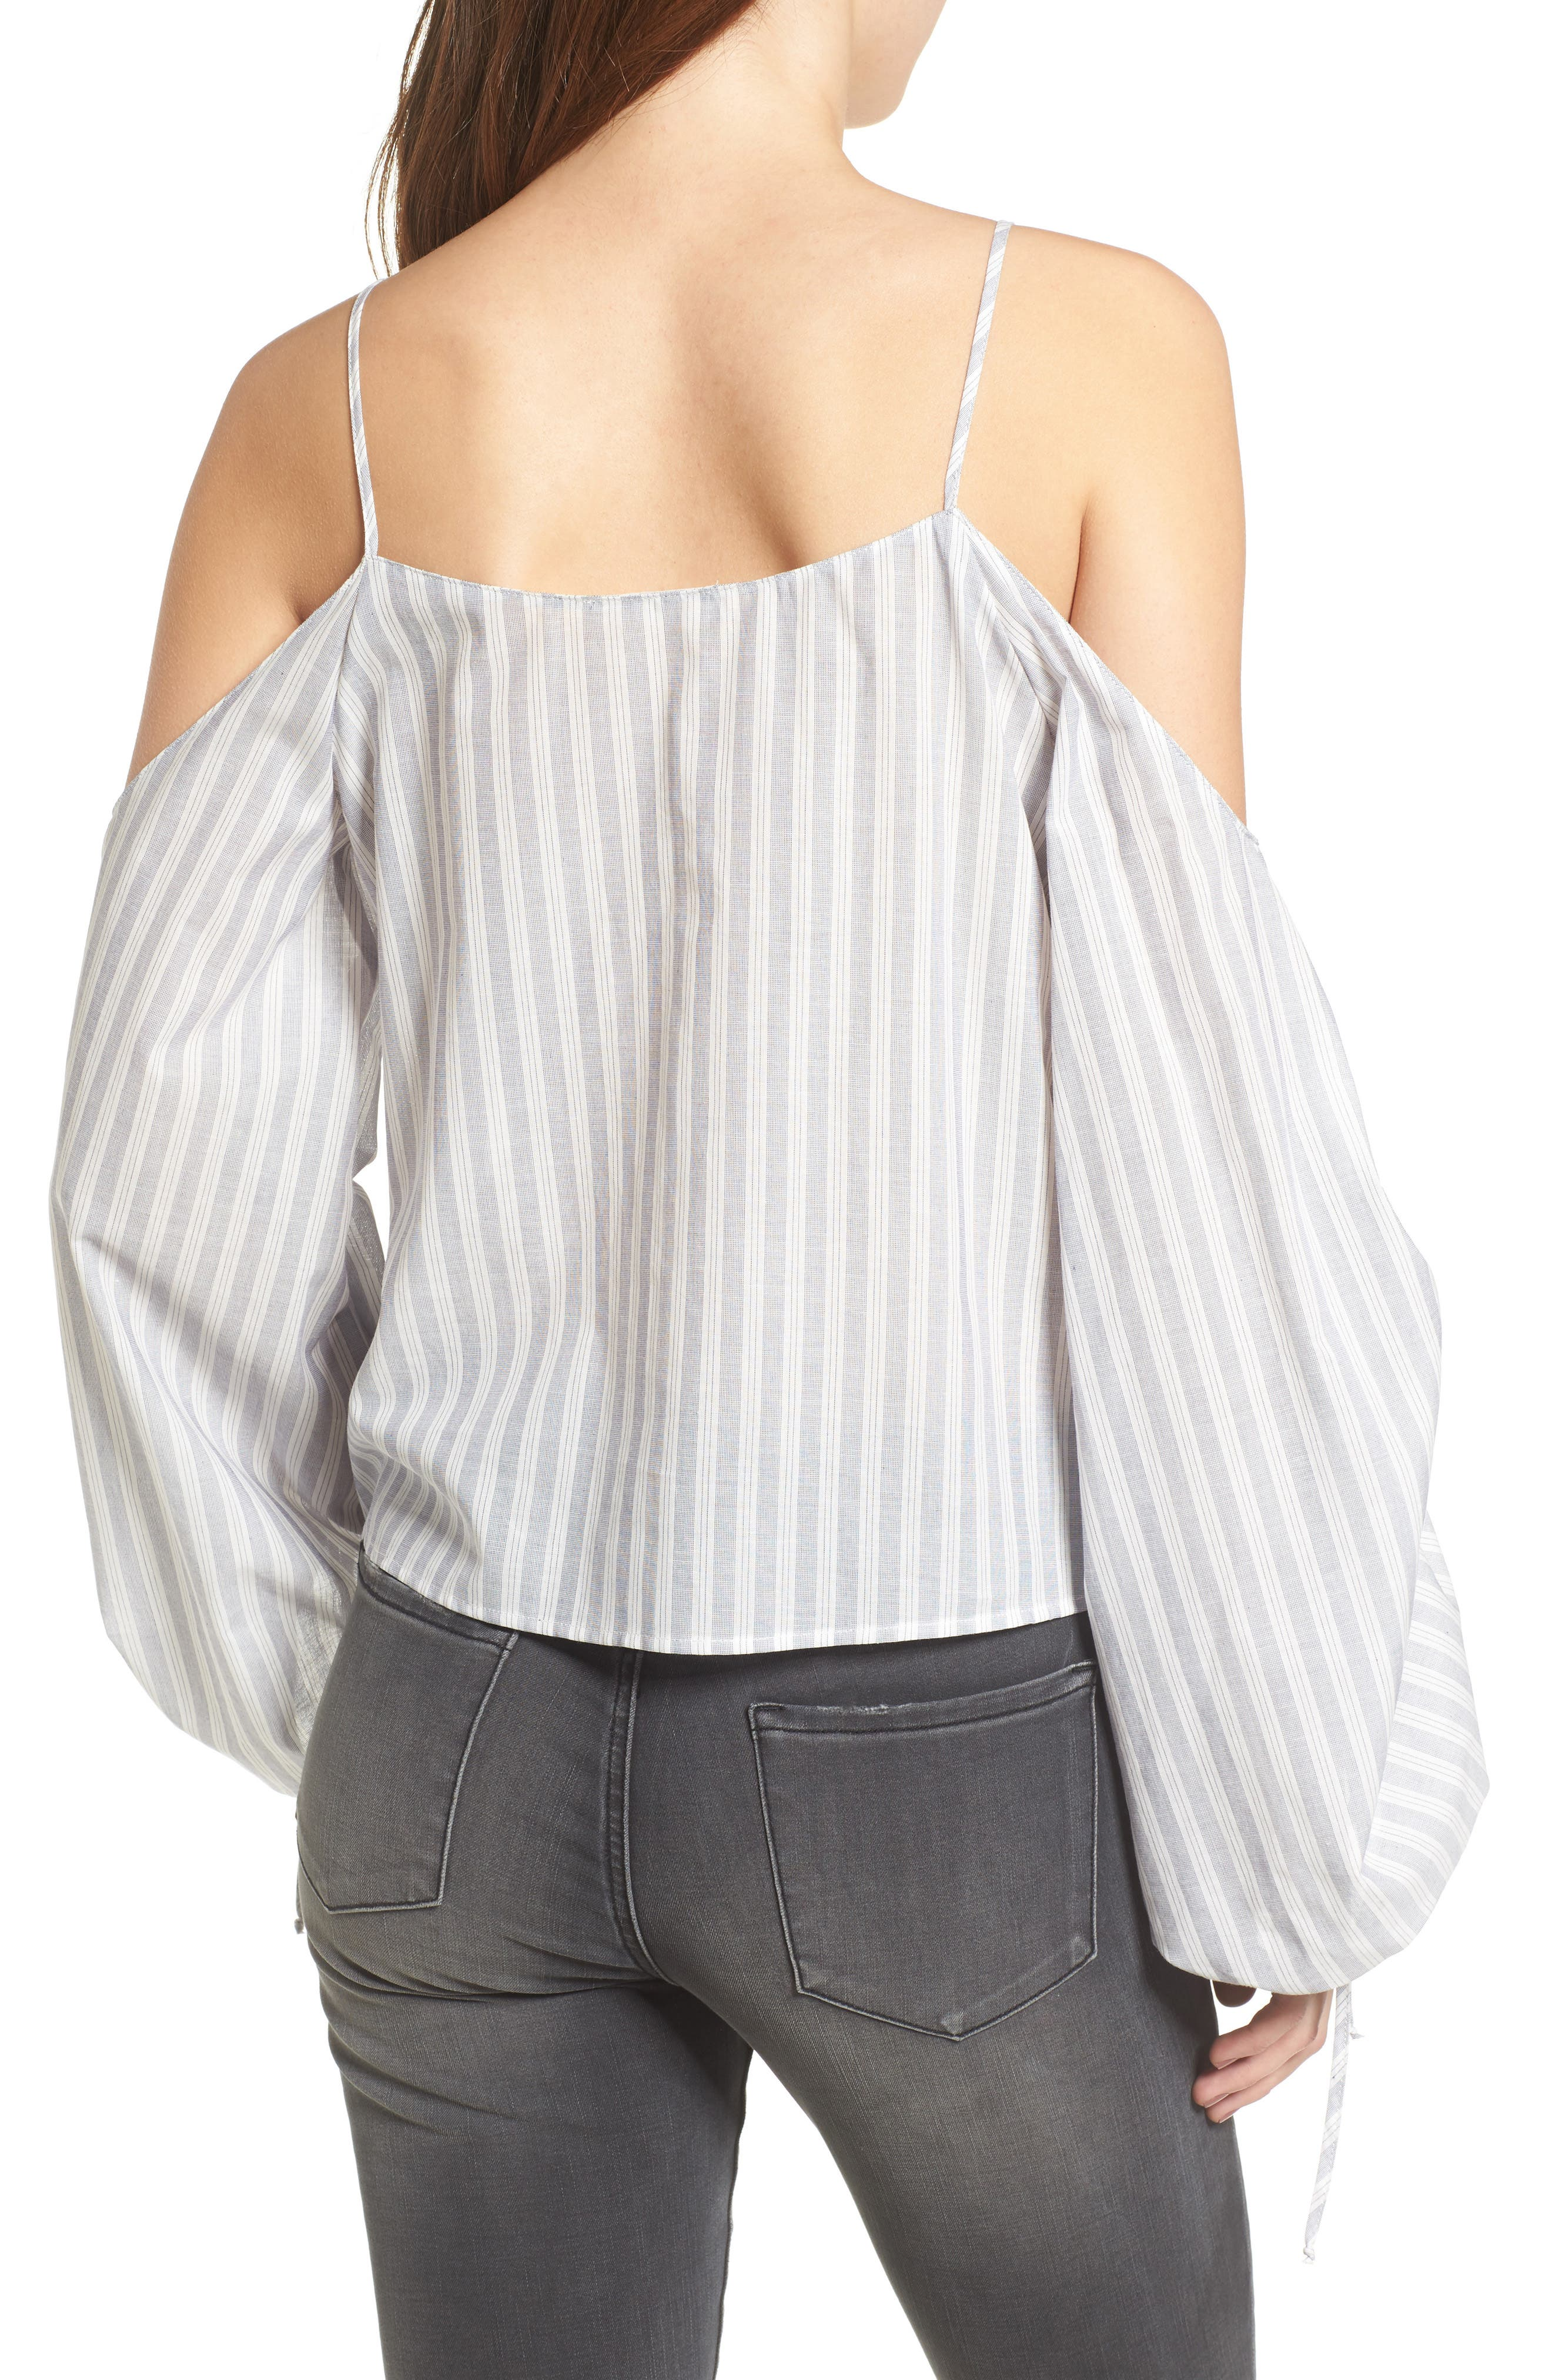 Cinched Balloon Sleeve Top,                             Alternate thumbnail 2, color,                             Grey/ White Stripe